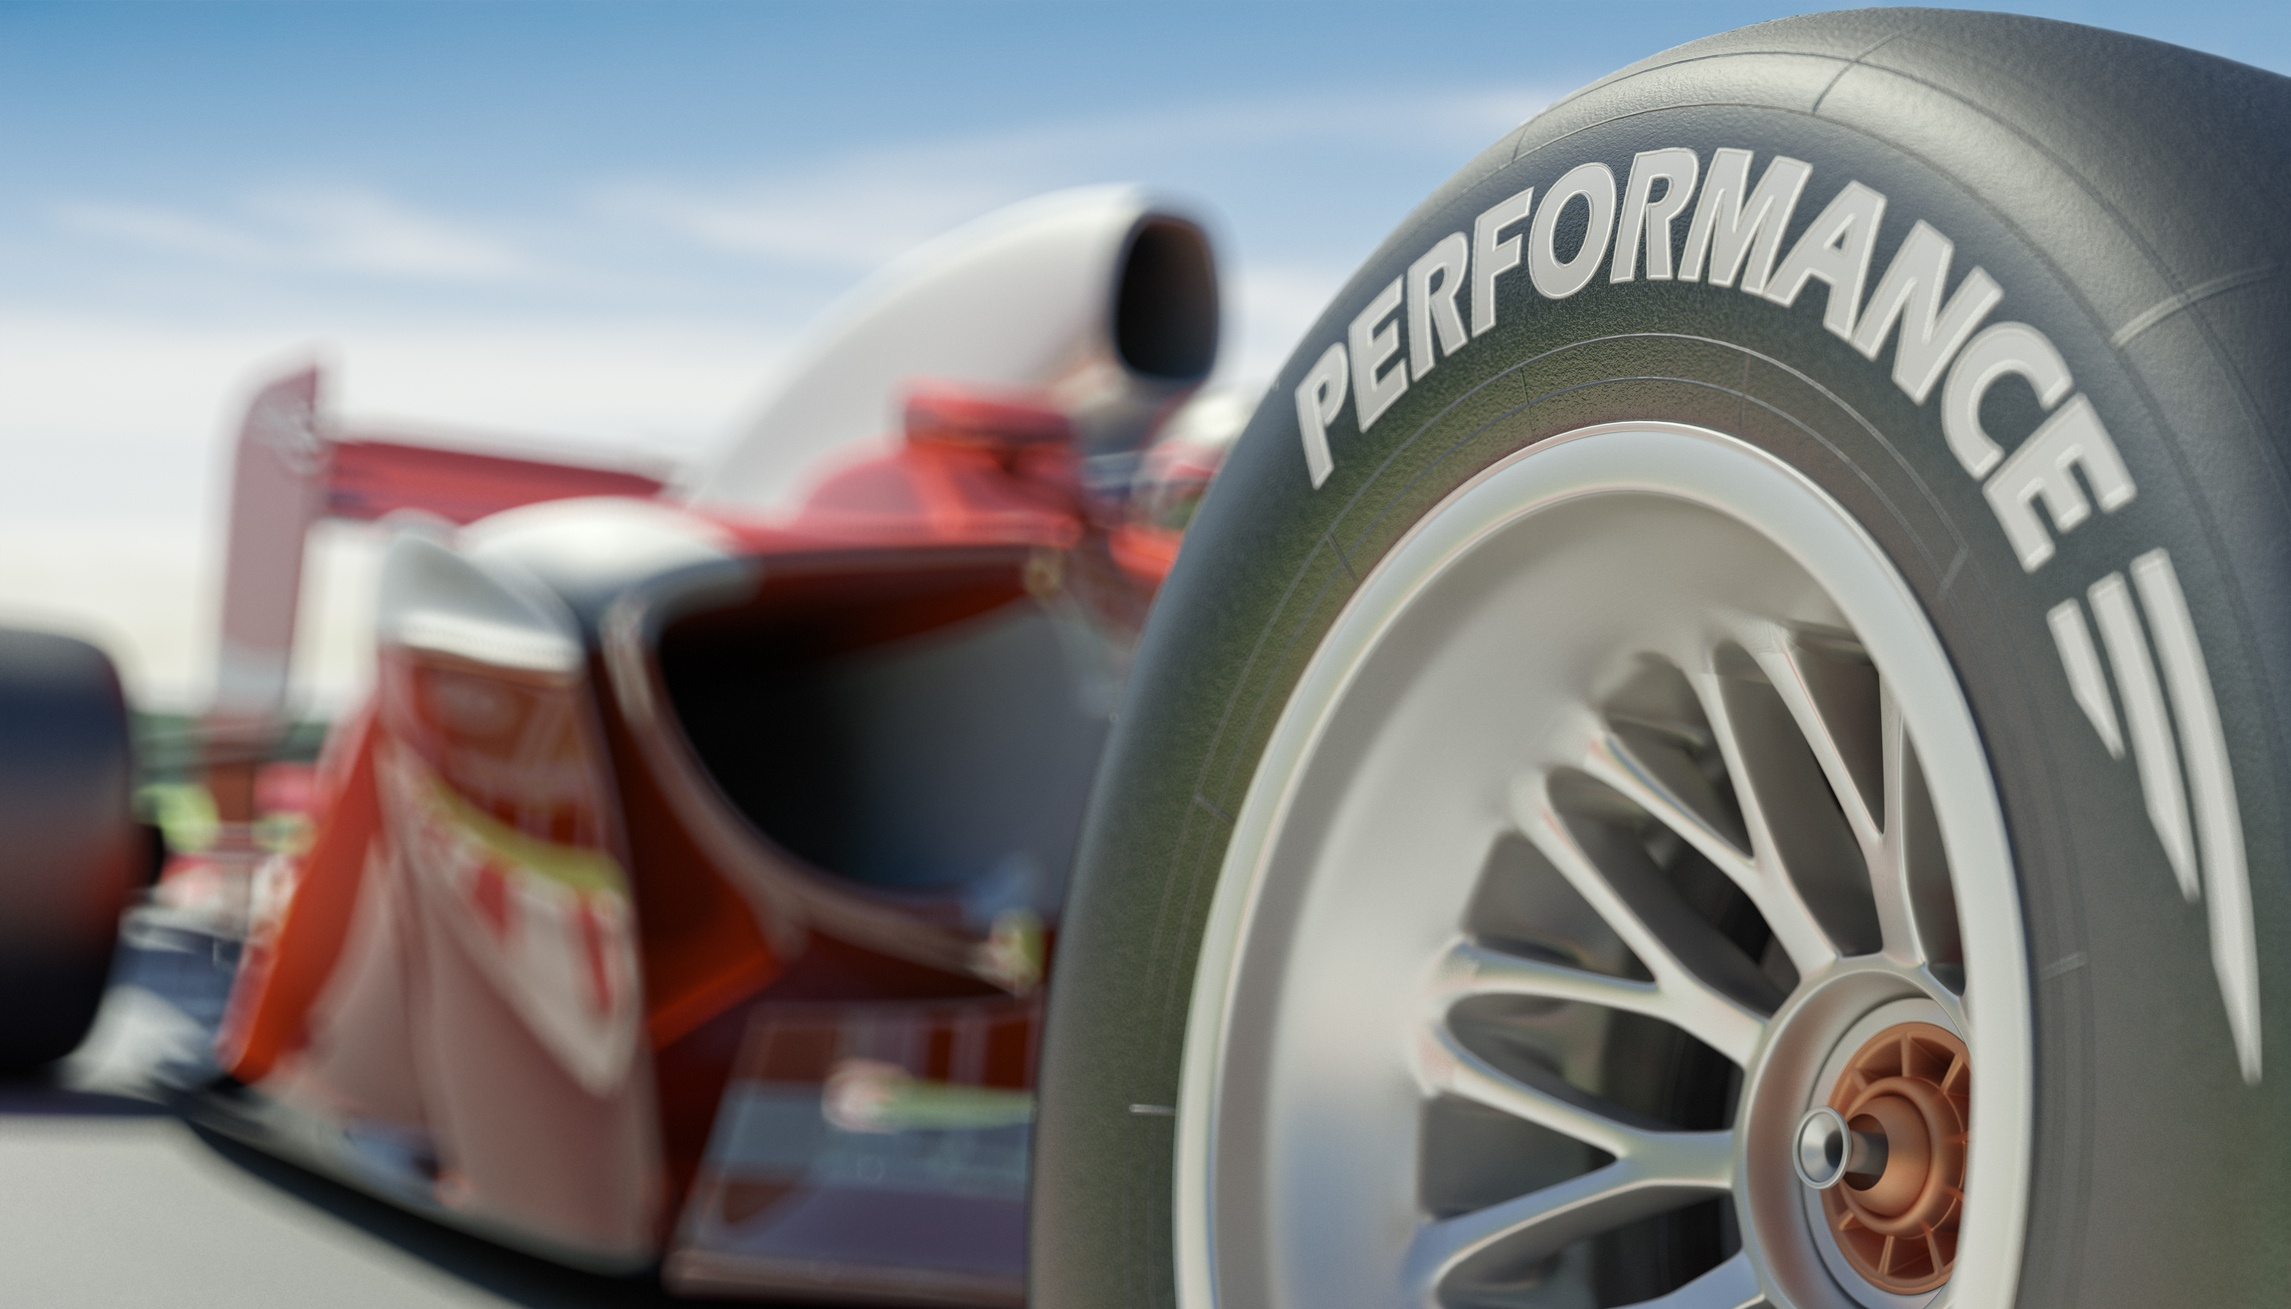 There is always a better way - F1 Race Car Performance - Sales